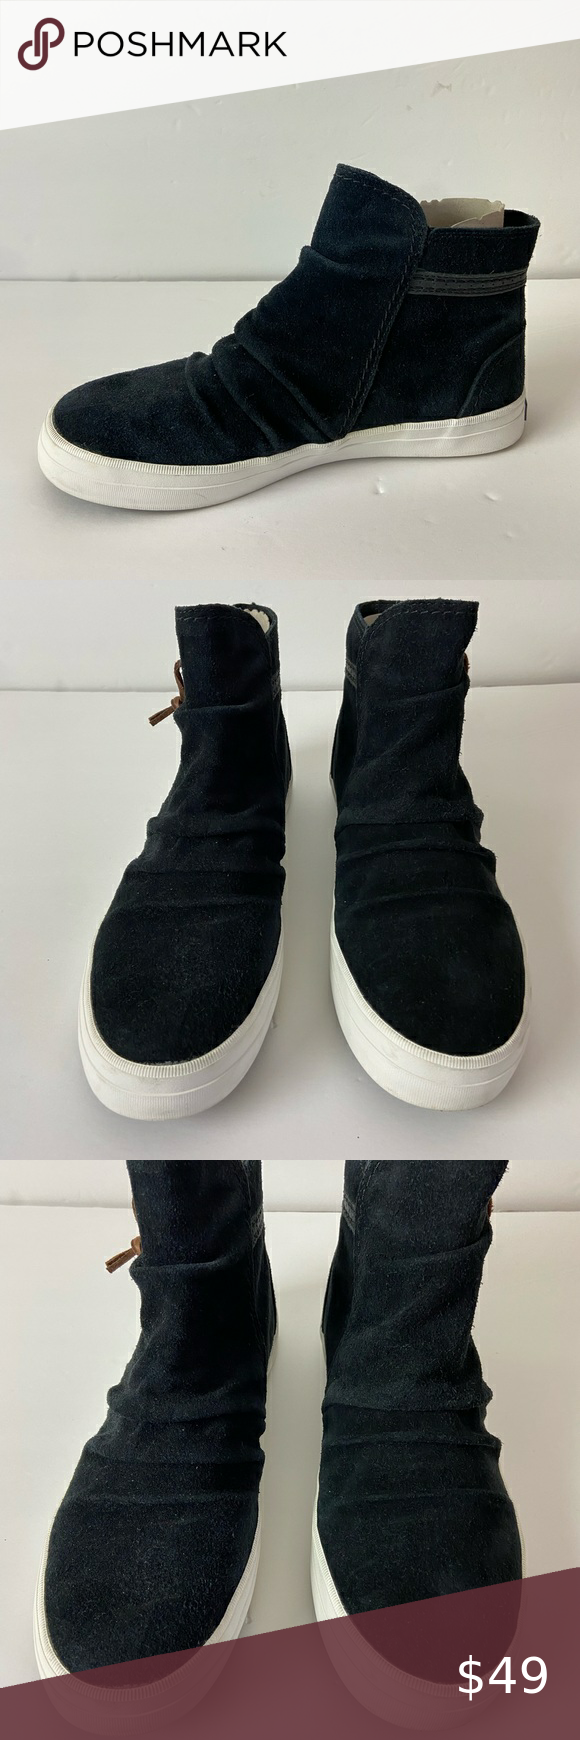 Sperry crest zone black suede high top